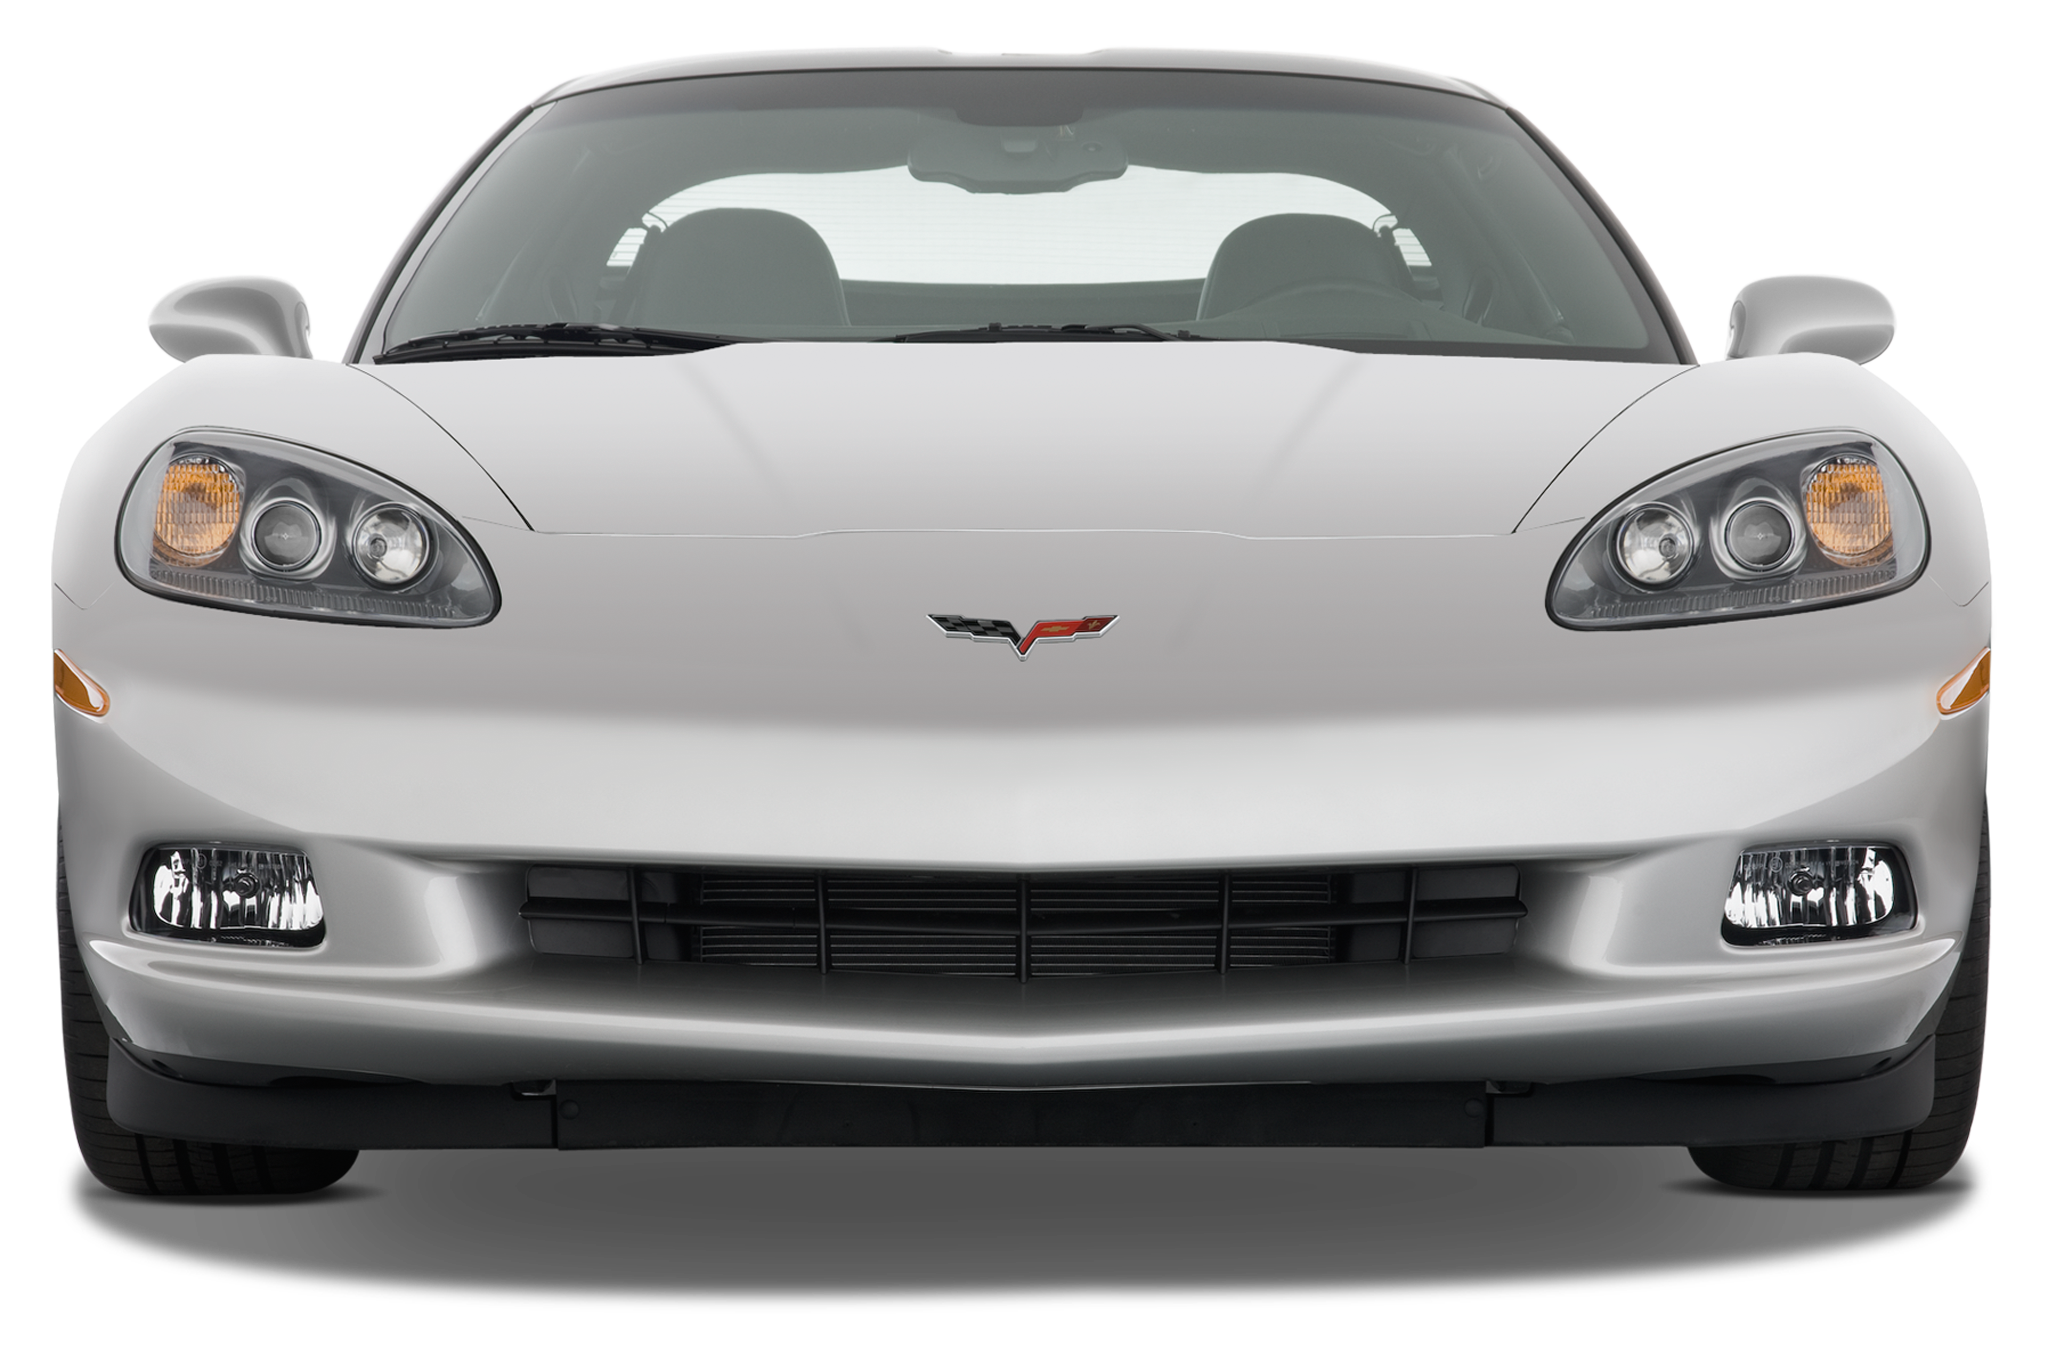 2010 chevrolet corvette grand sport chevy sport coupe review automobile magazine. Black Bedroom Furniture Sets. Home Design Ideas